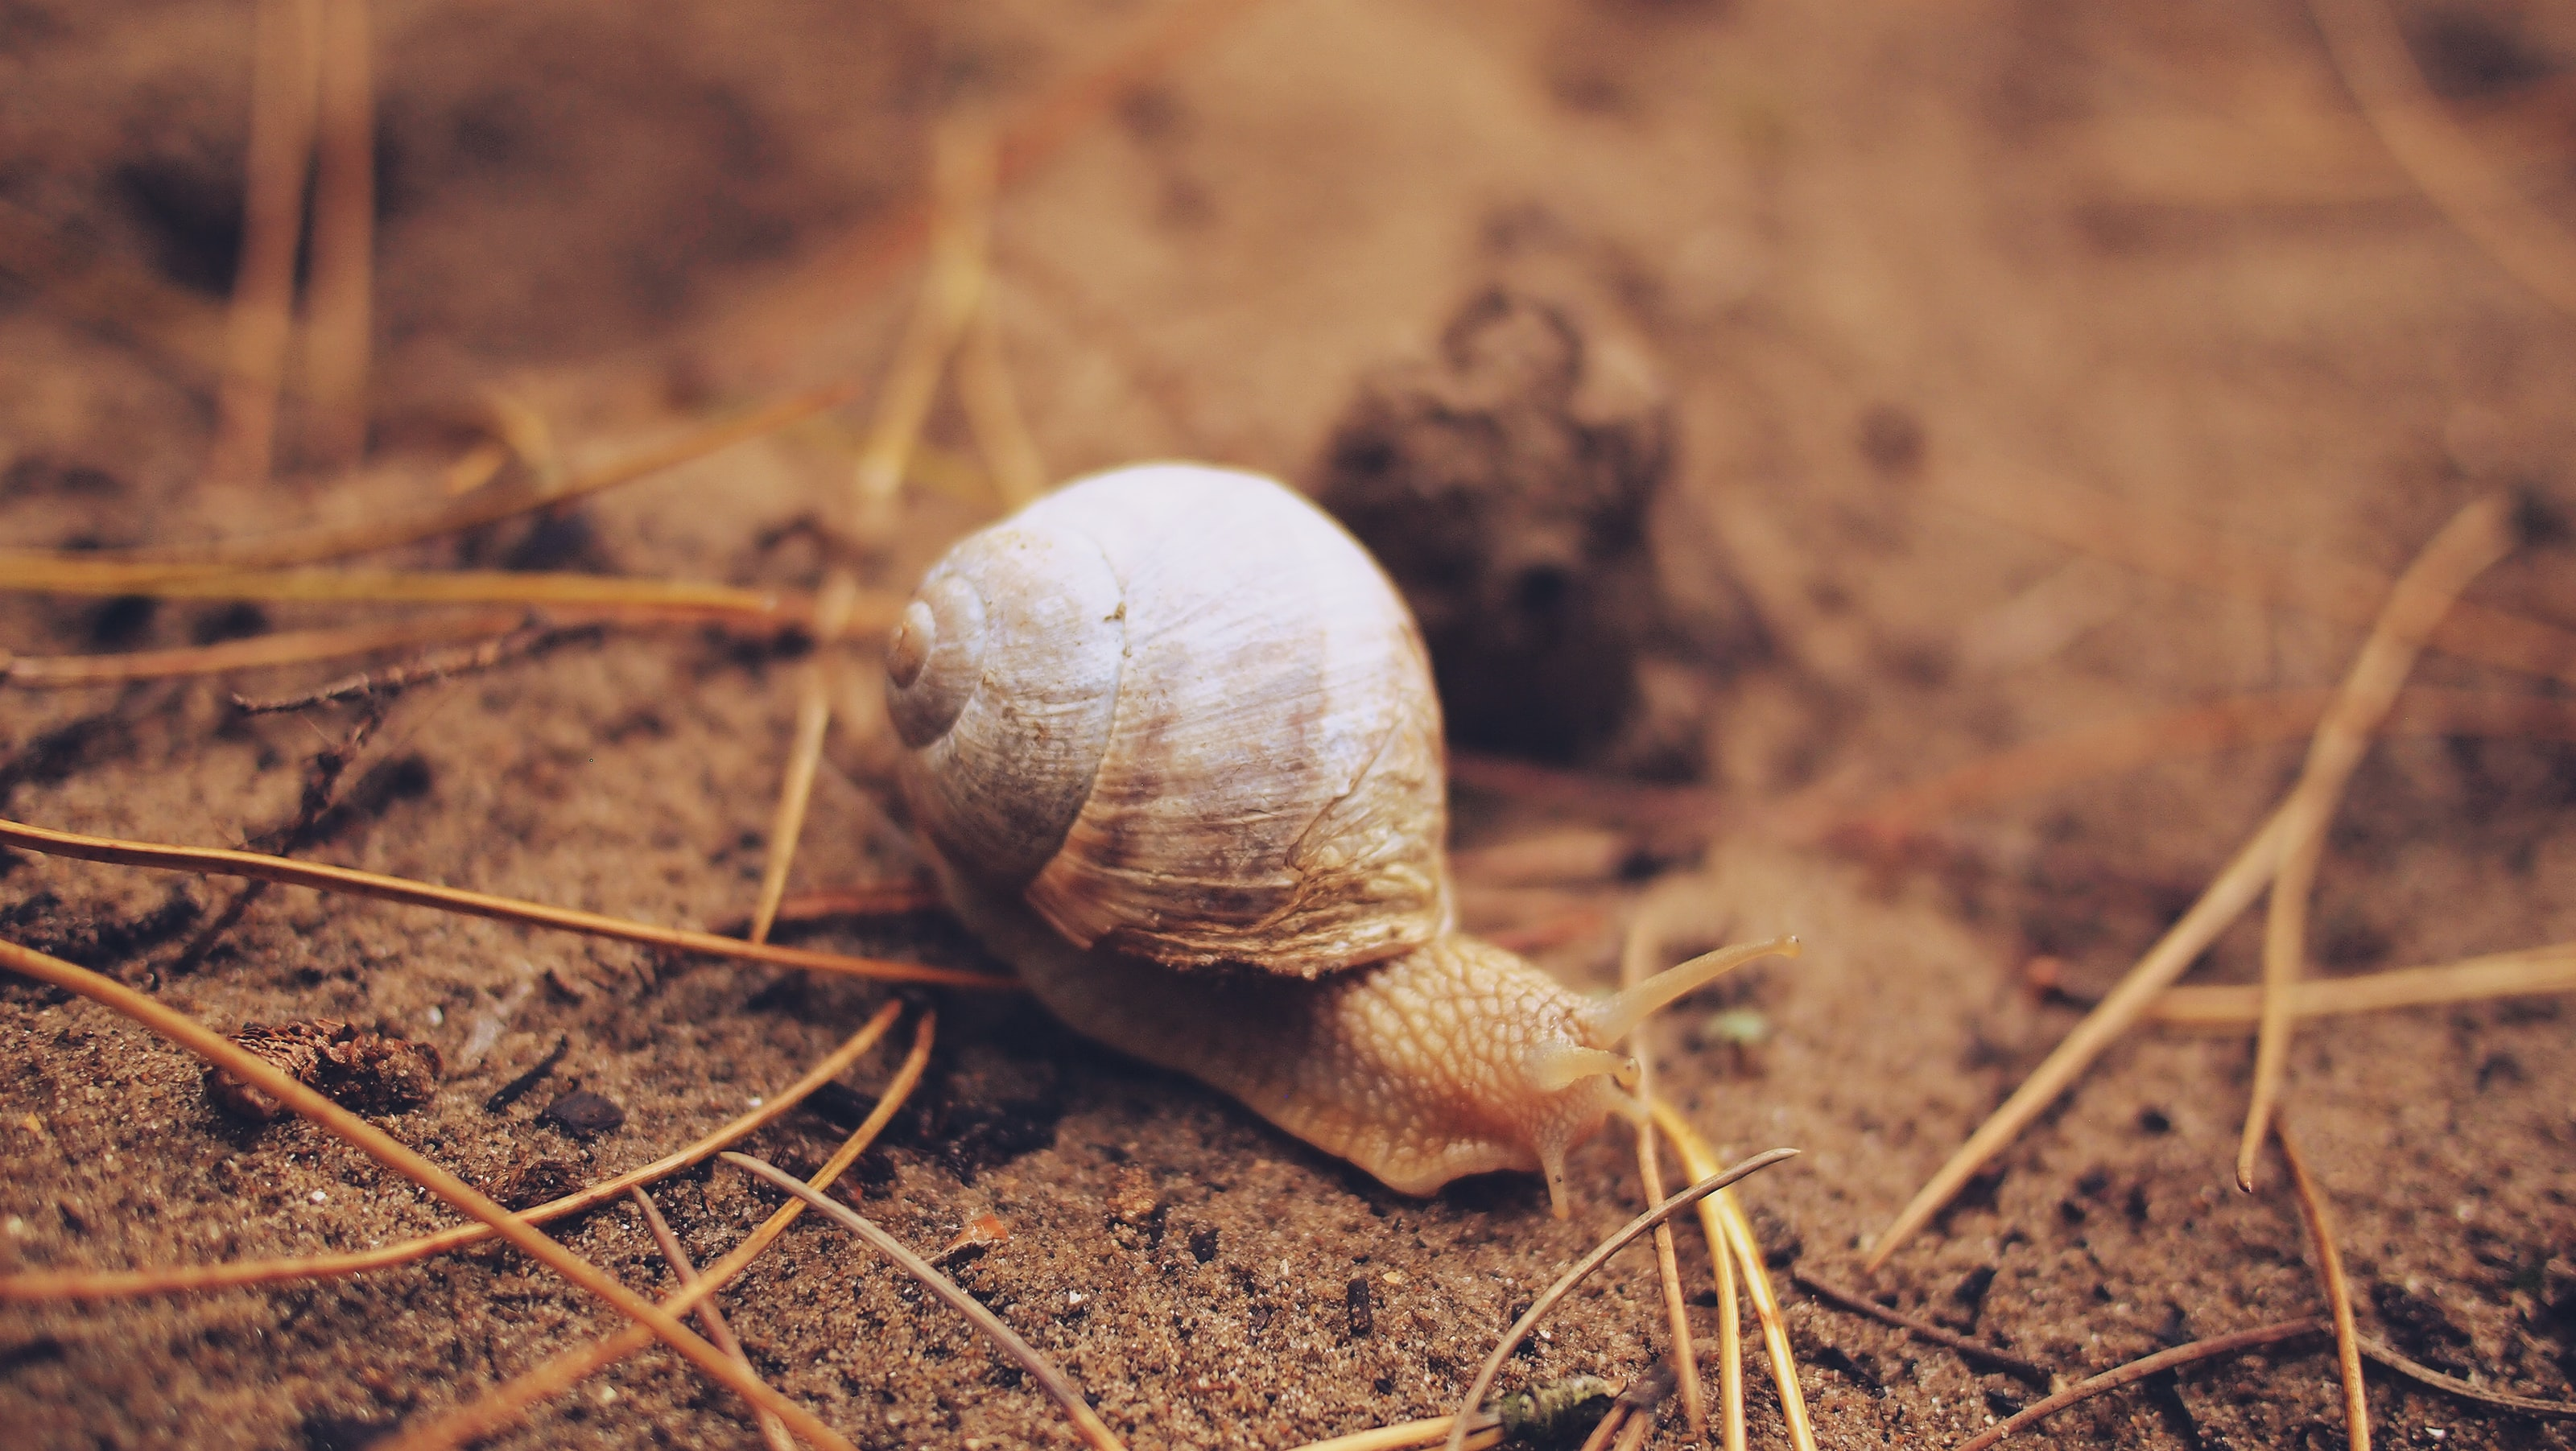 selective focus photo of brown snail on brown soil